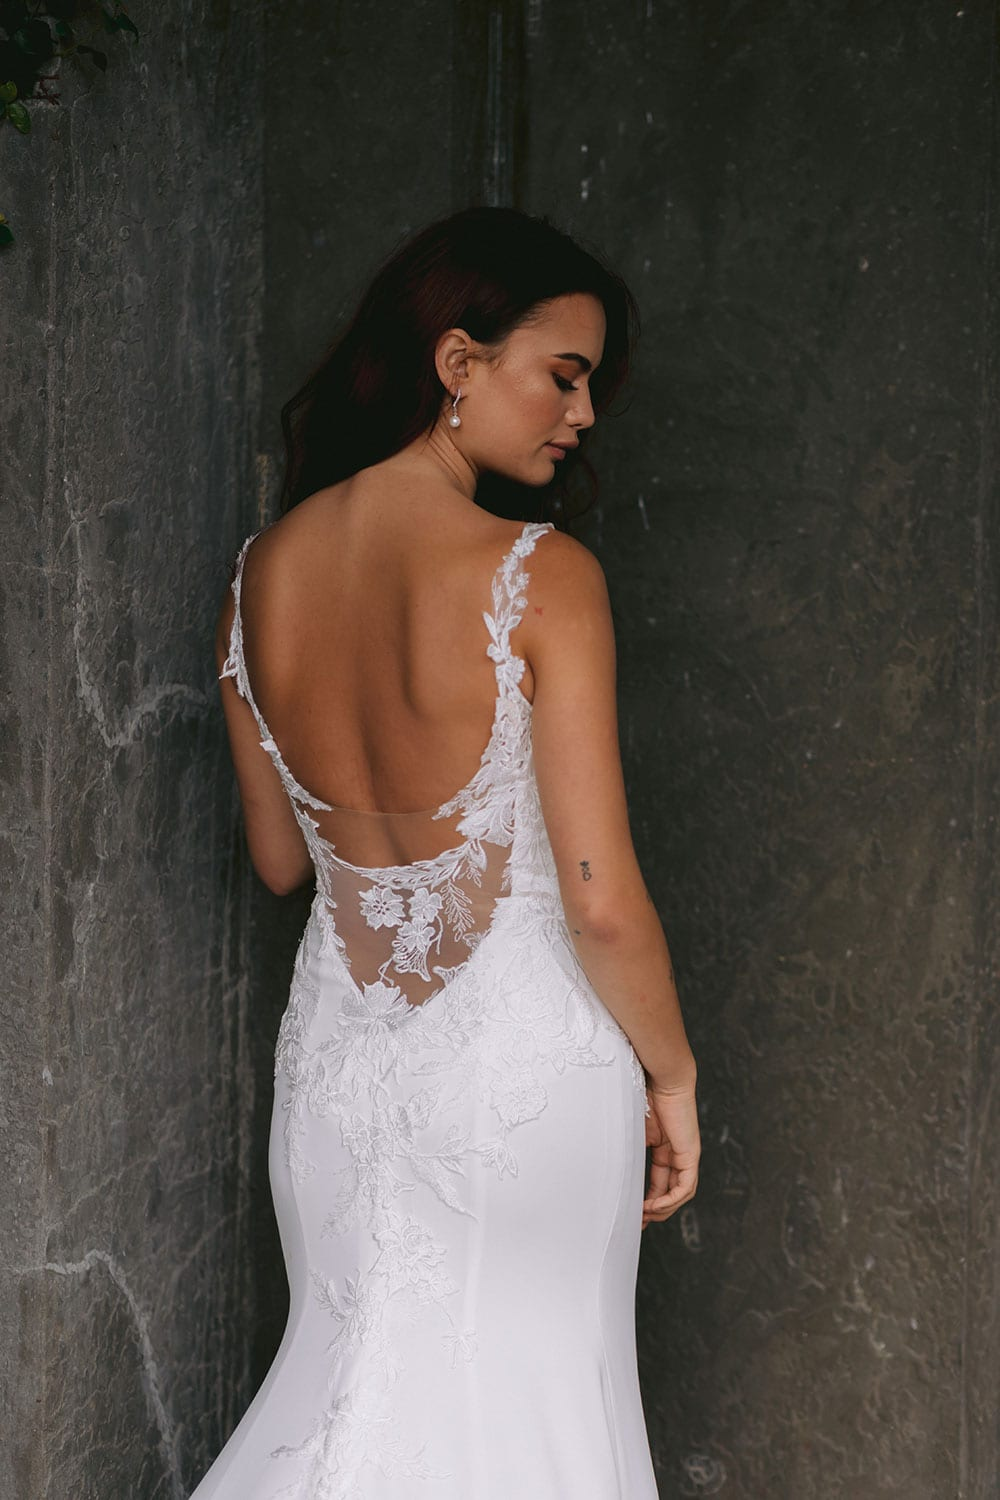 Ana Wedding gown from Vinka Design - This beautiful gown is graced by hand-appliqued delicate floral leaf lace, subtly worked into the front of the bodice and more prominently on the back. A fit-and-flare cut shapes the figure. Model wearing gown highlighting back of dress lace detail with bodice.